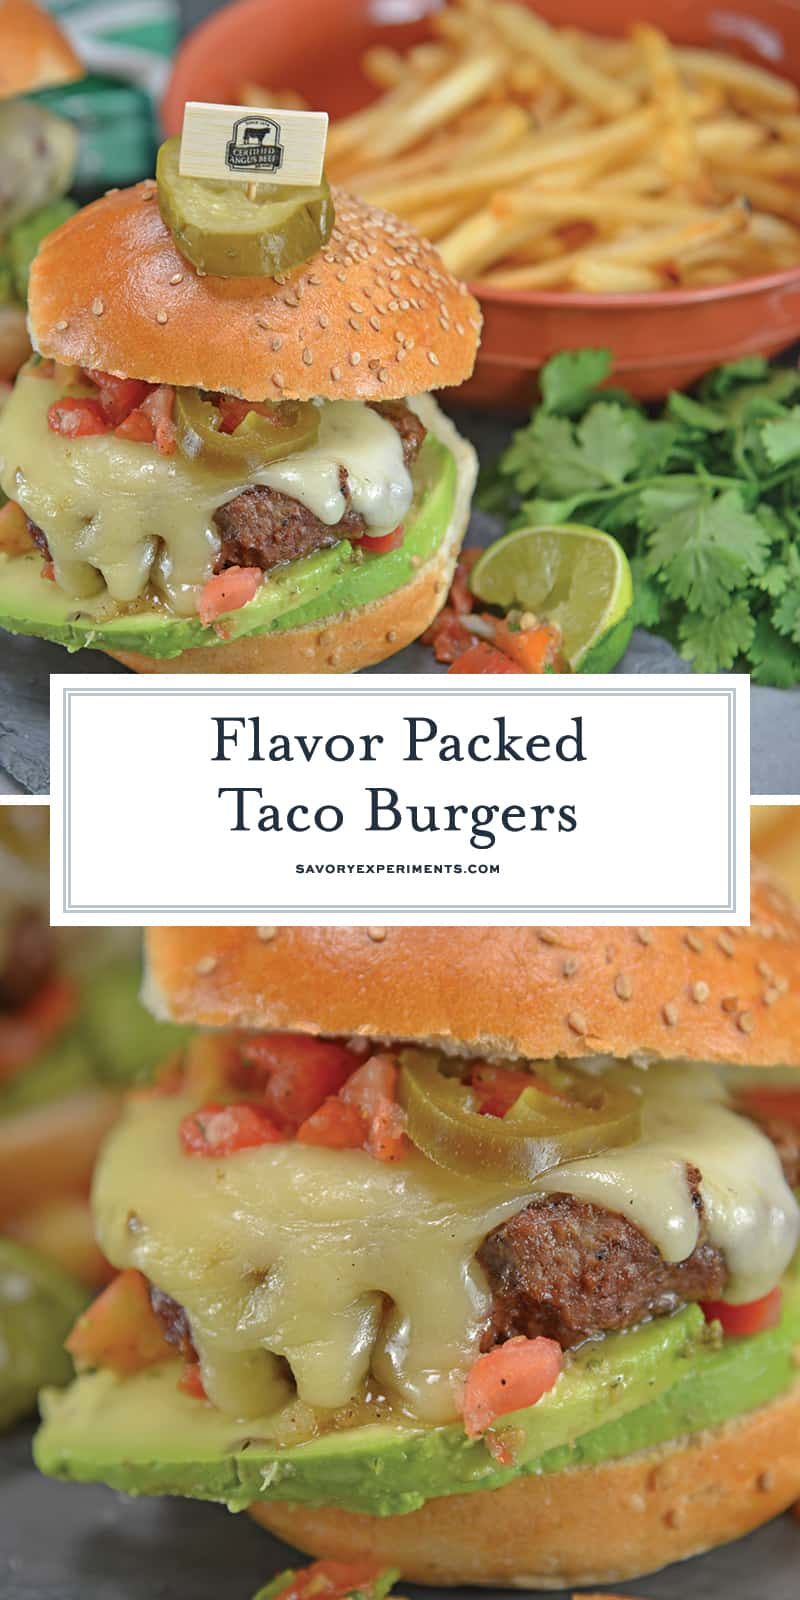 Taco Burgers are a spicy mix of tacos and burgers! Topped with pico de gallo, avocado slices, jalapenos, pepper jack cheese and cool sour cream. #gourmethamburgers #tacohamburger www.savoryexperiments.com